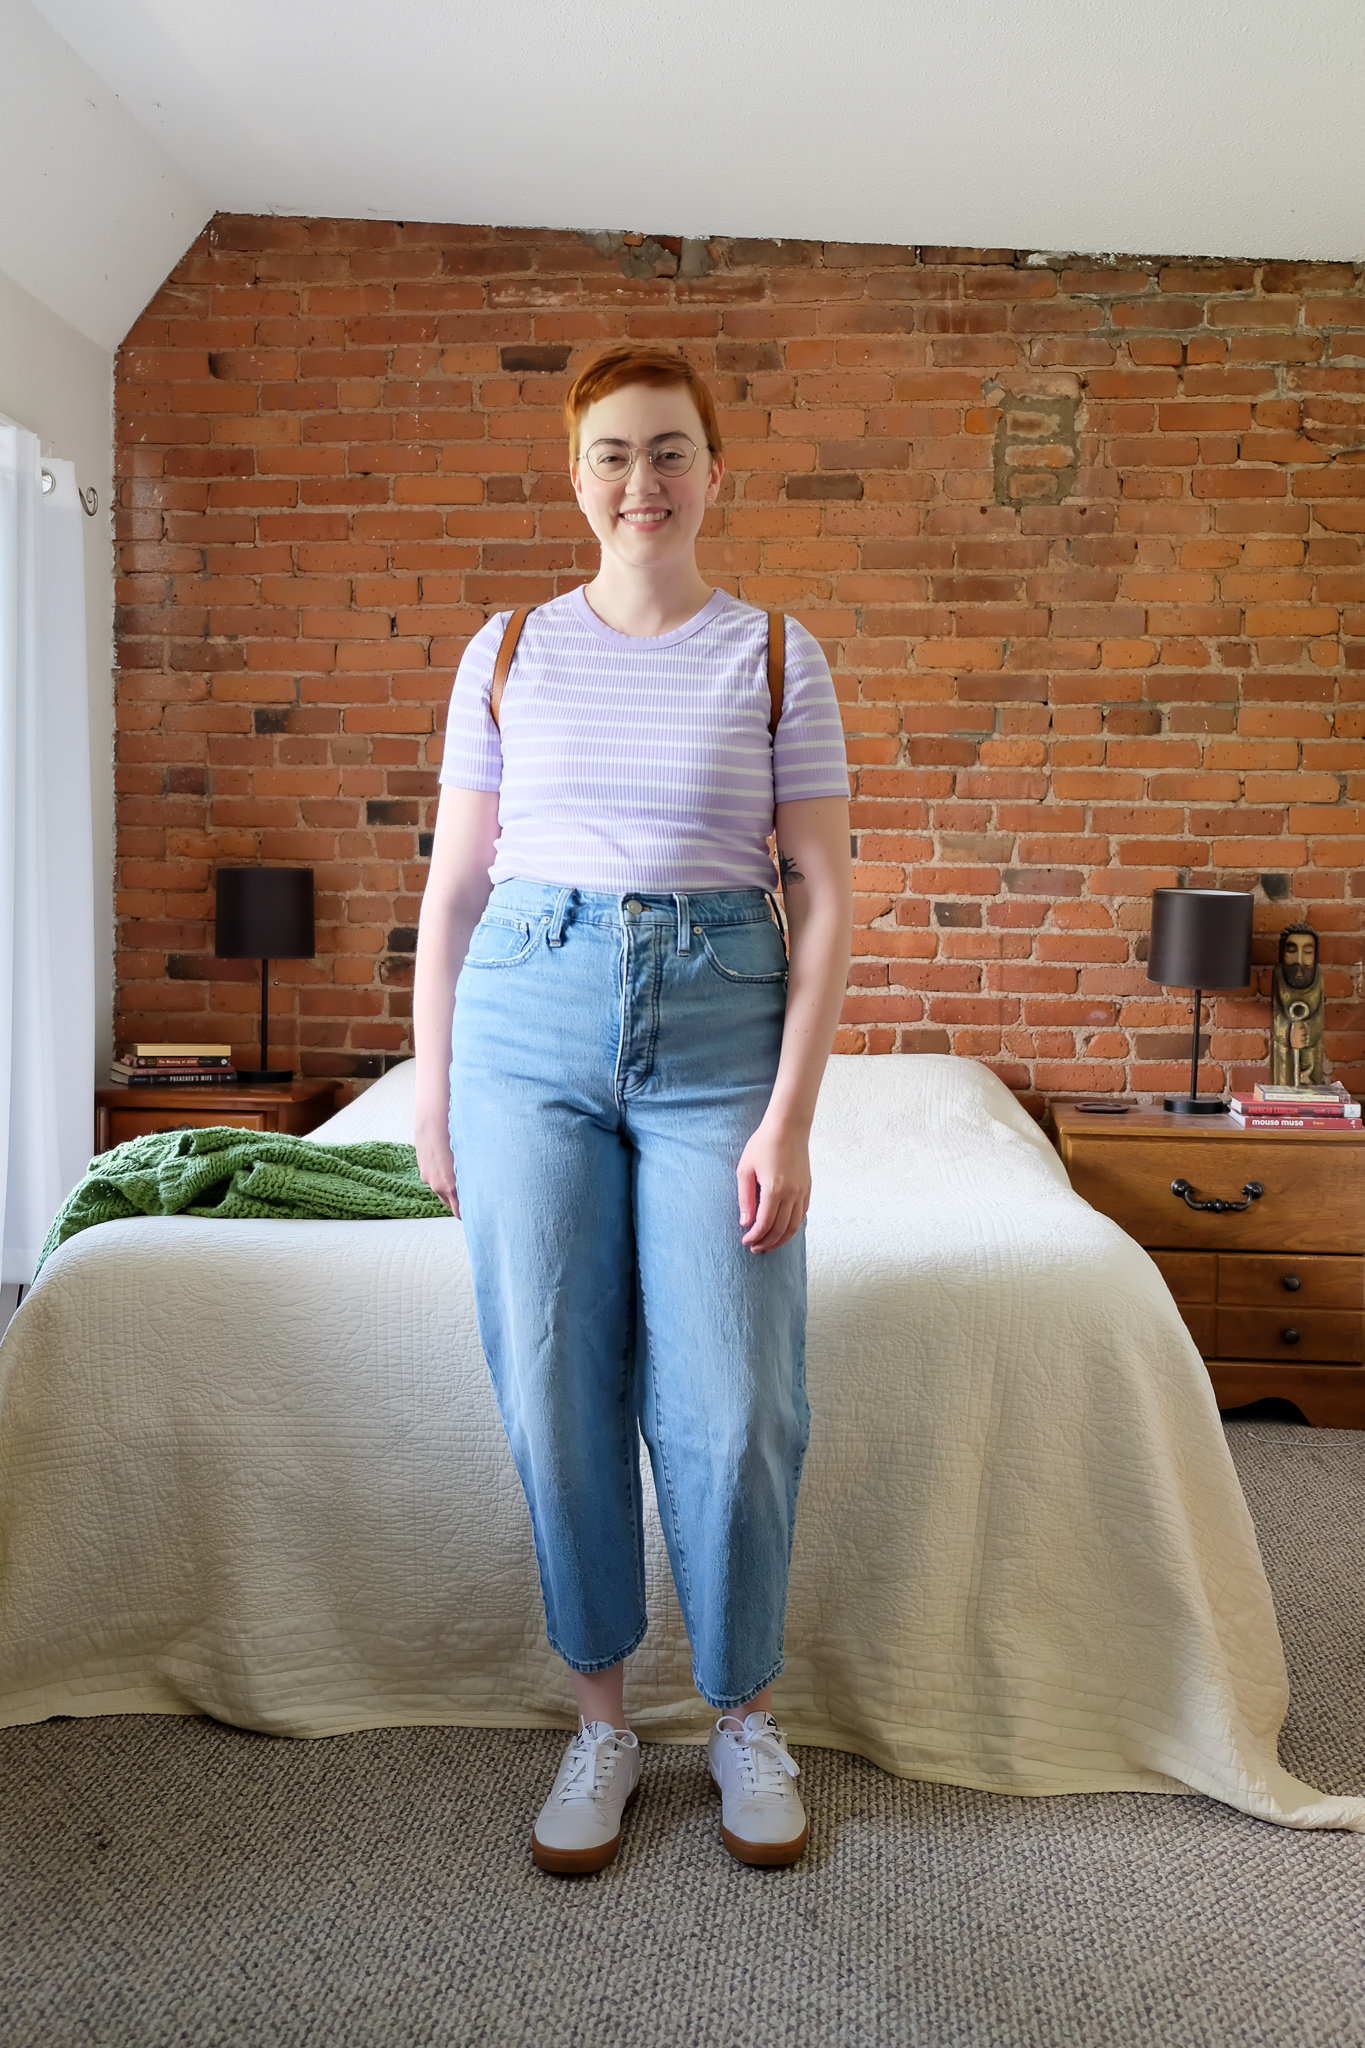 Thoughtful Summer Outfits Roundup - Madewell balloon jeans